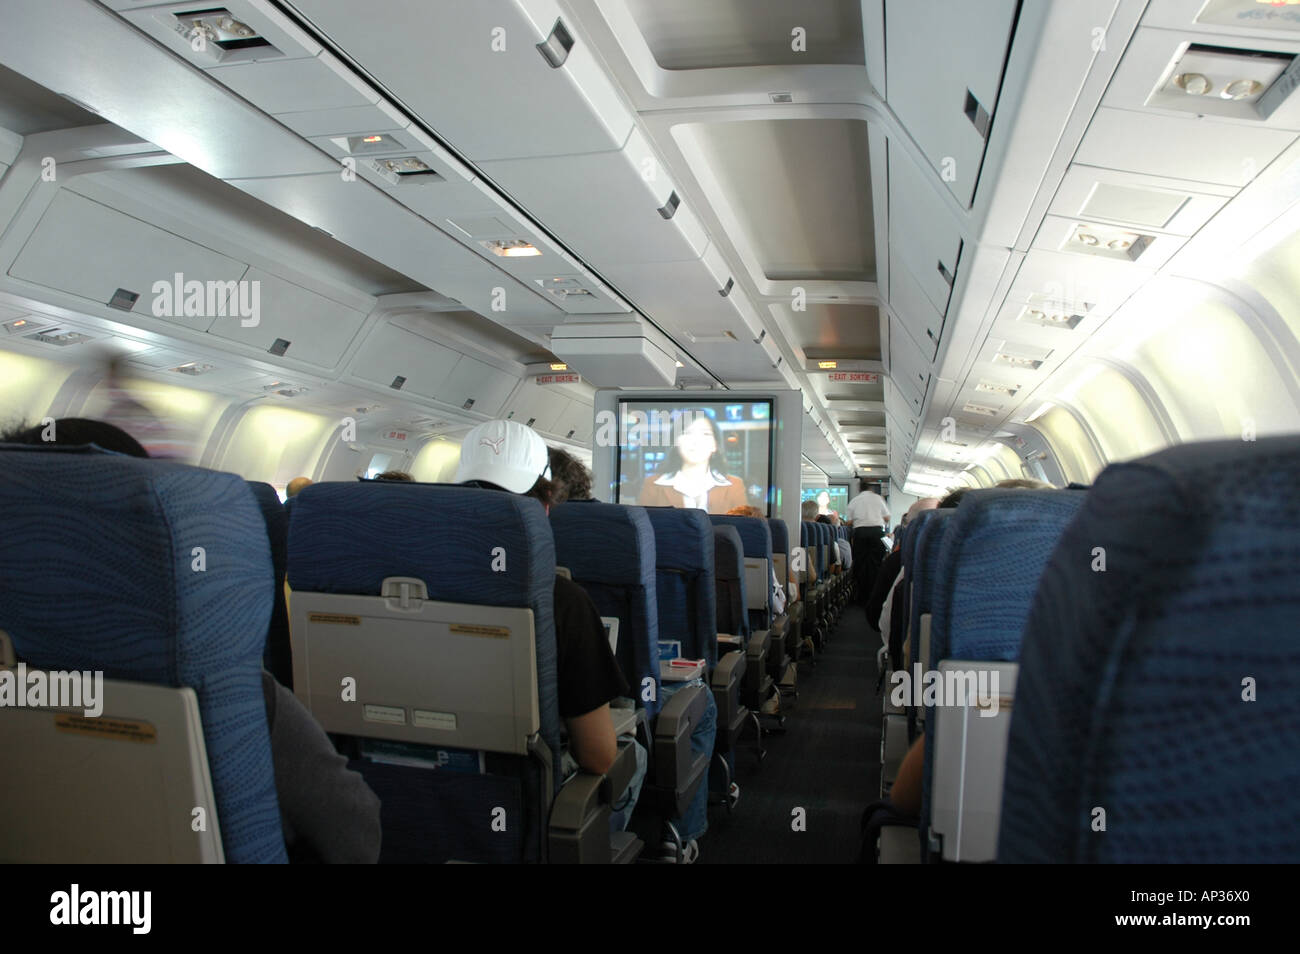 Interior of wide-bodied passenger aircraft cabin. - Stock Image